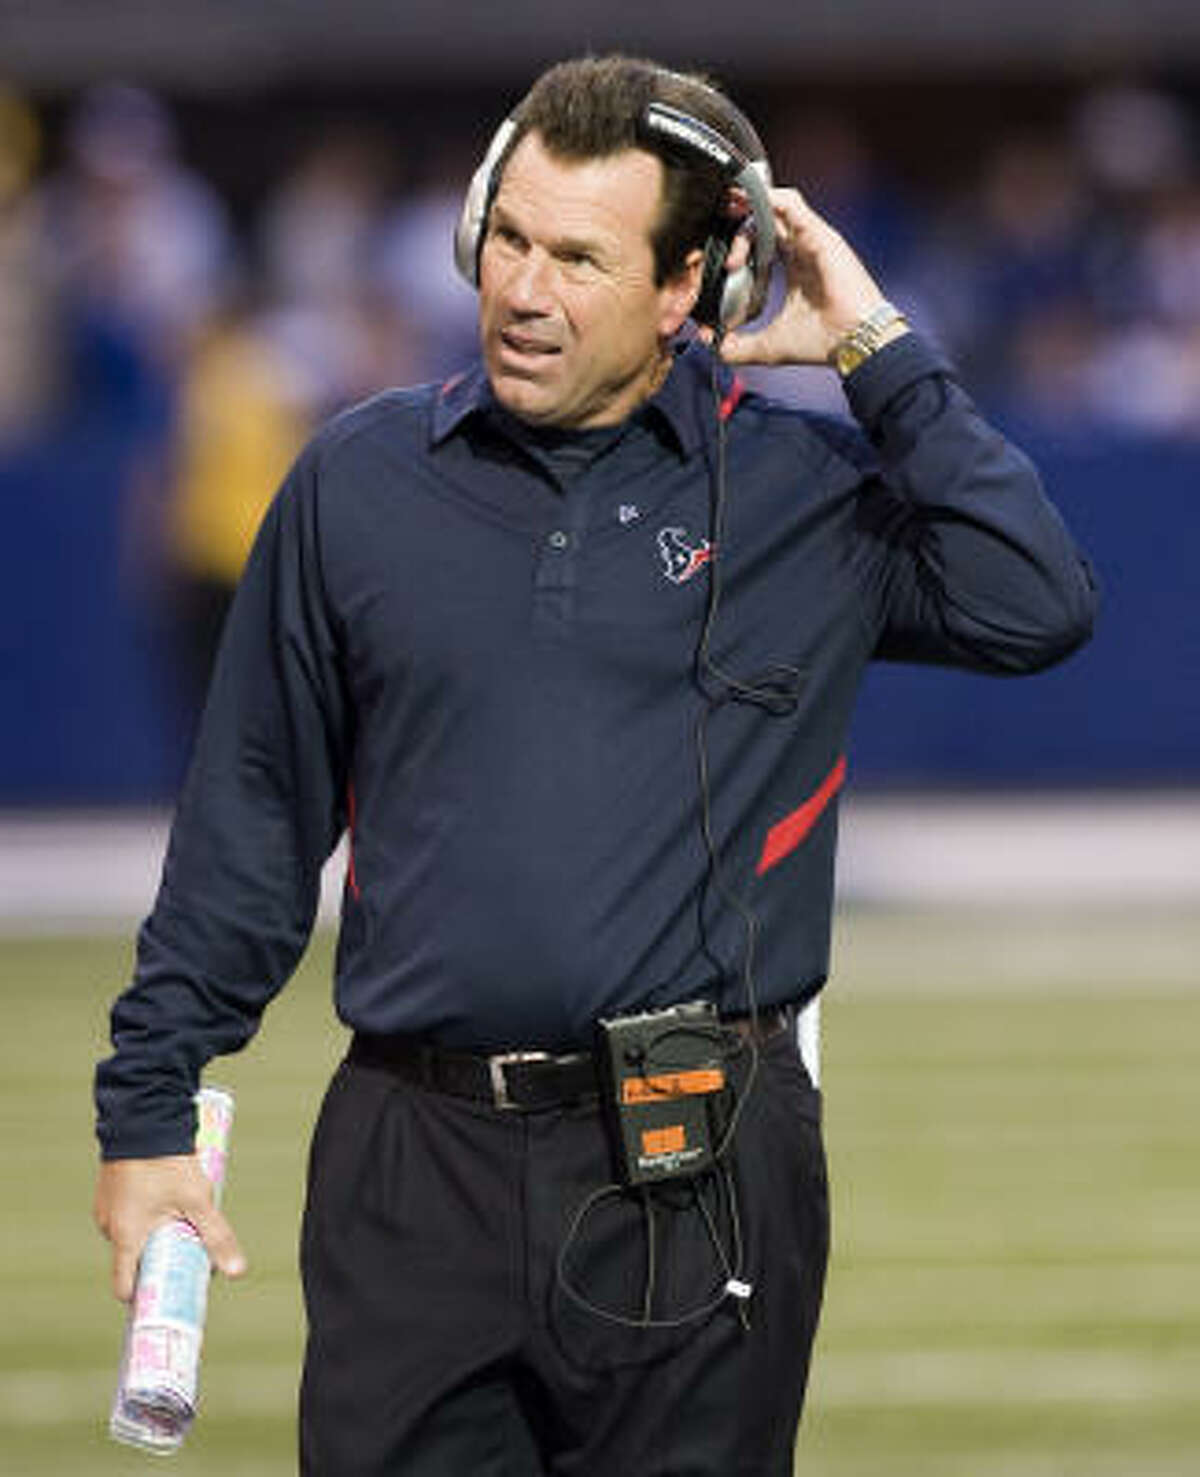 Texans coach Gary Kubiak has a 31-33 record in four years with the team.